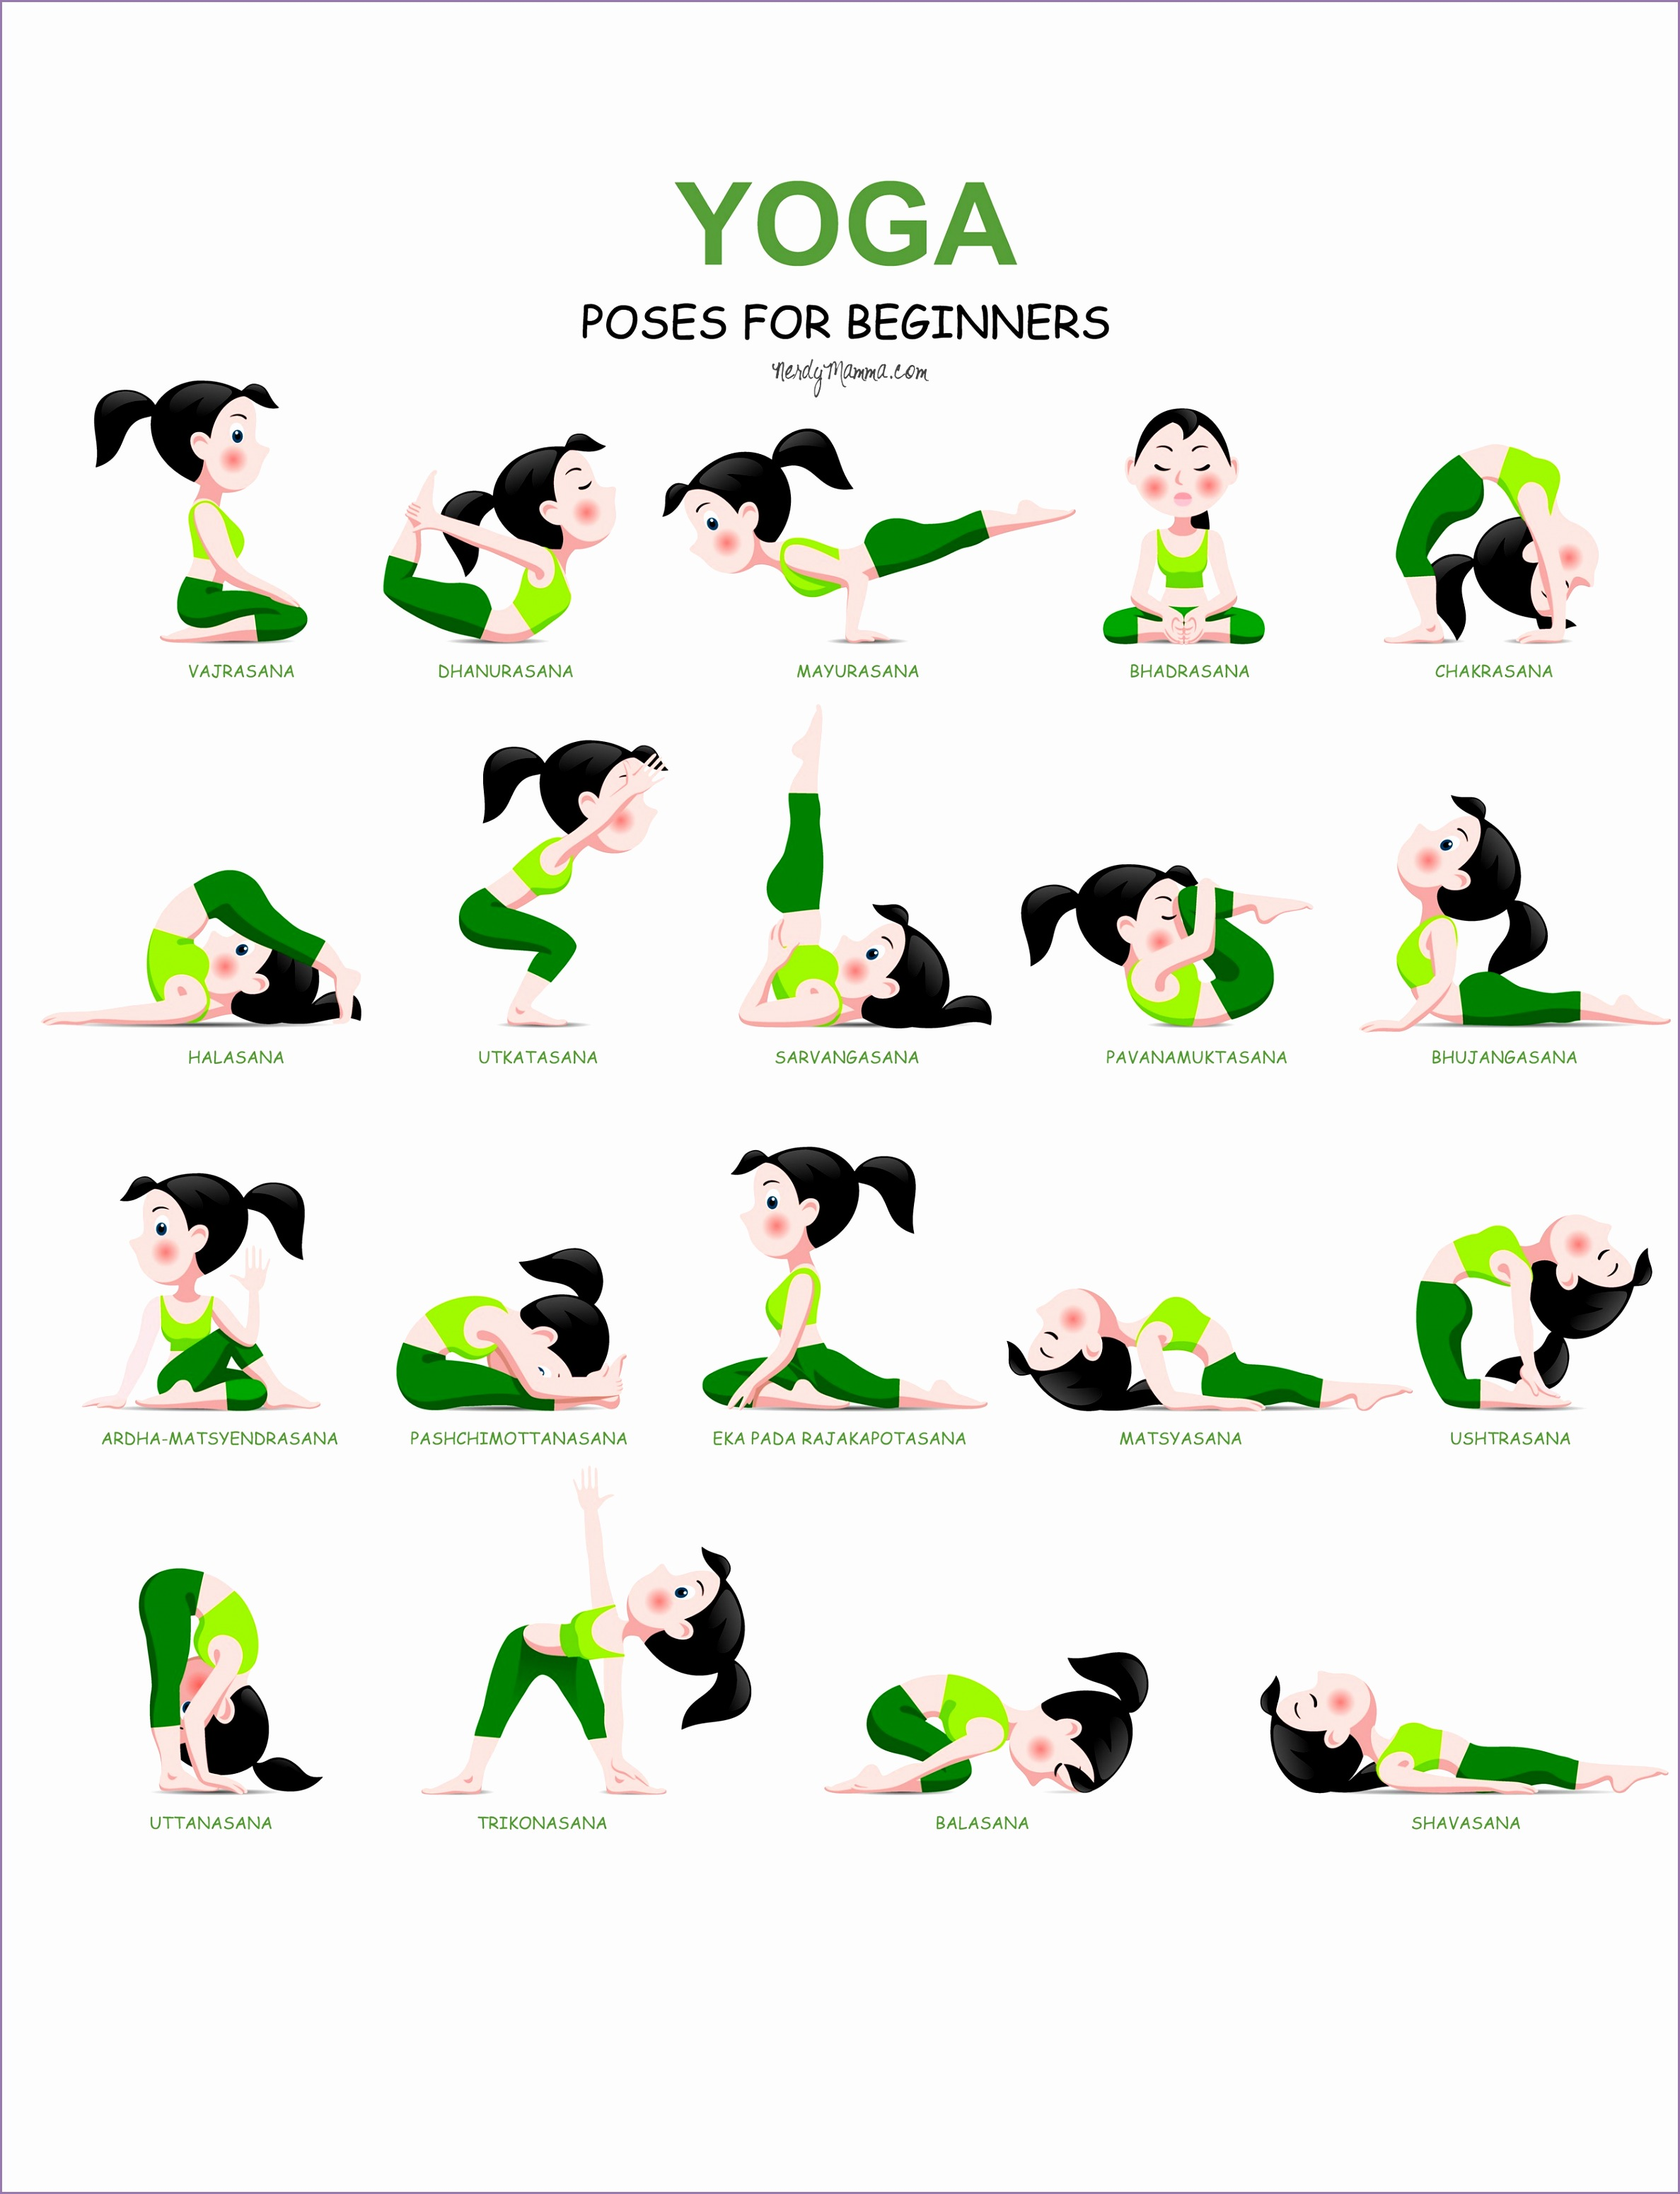 A Basic Yoga Session need not take too long A basic session usually follows this order